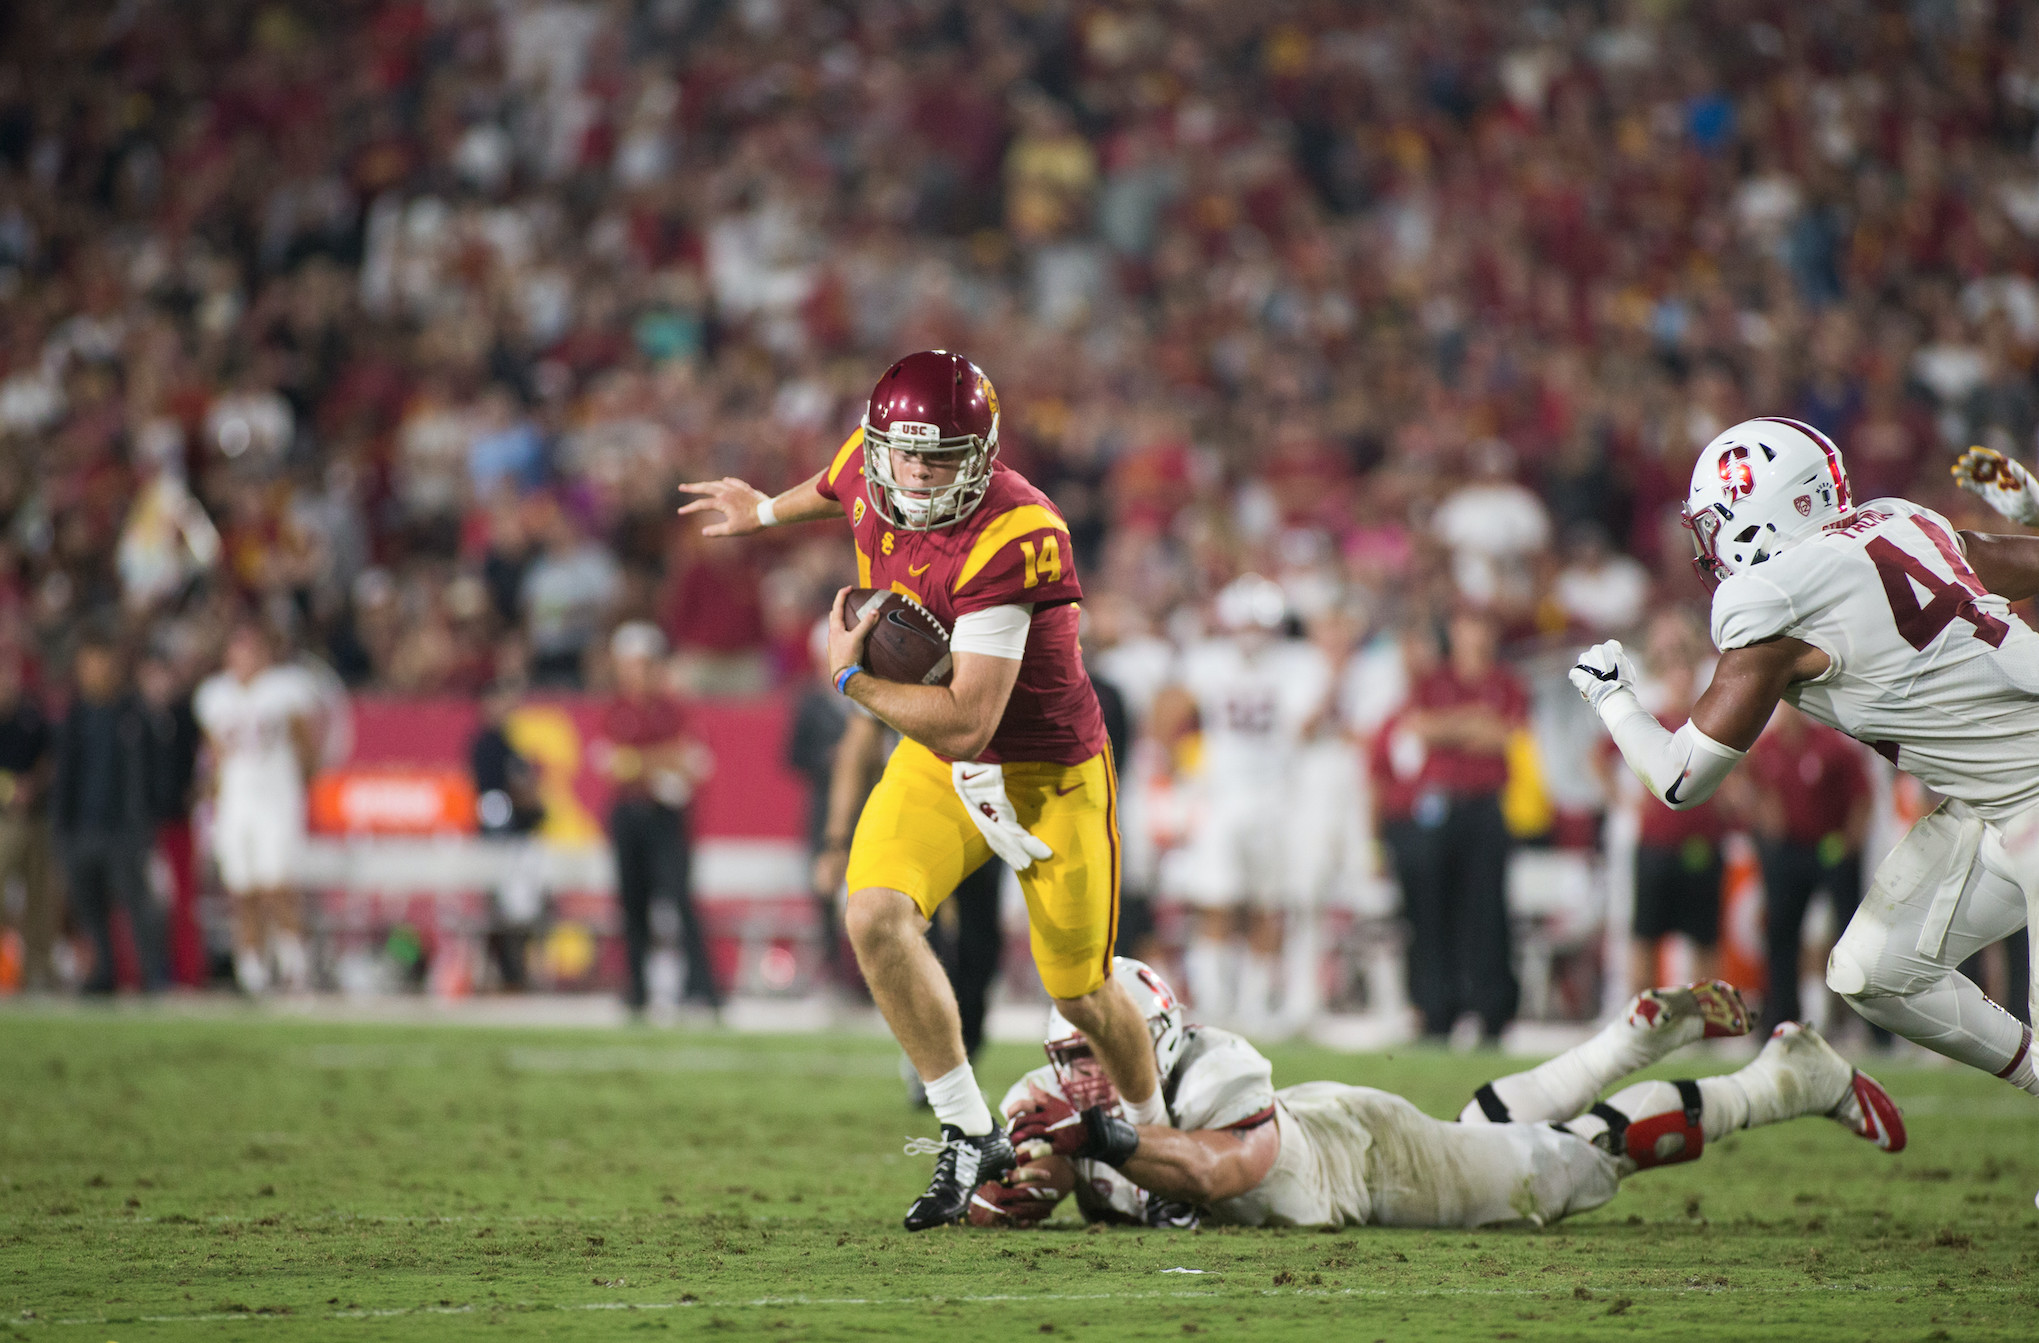 USC looks for a win and a boost in rematch with Texas